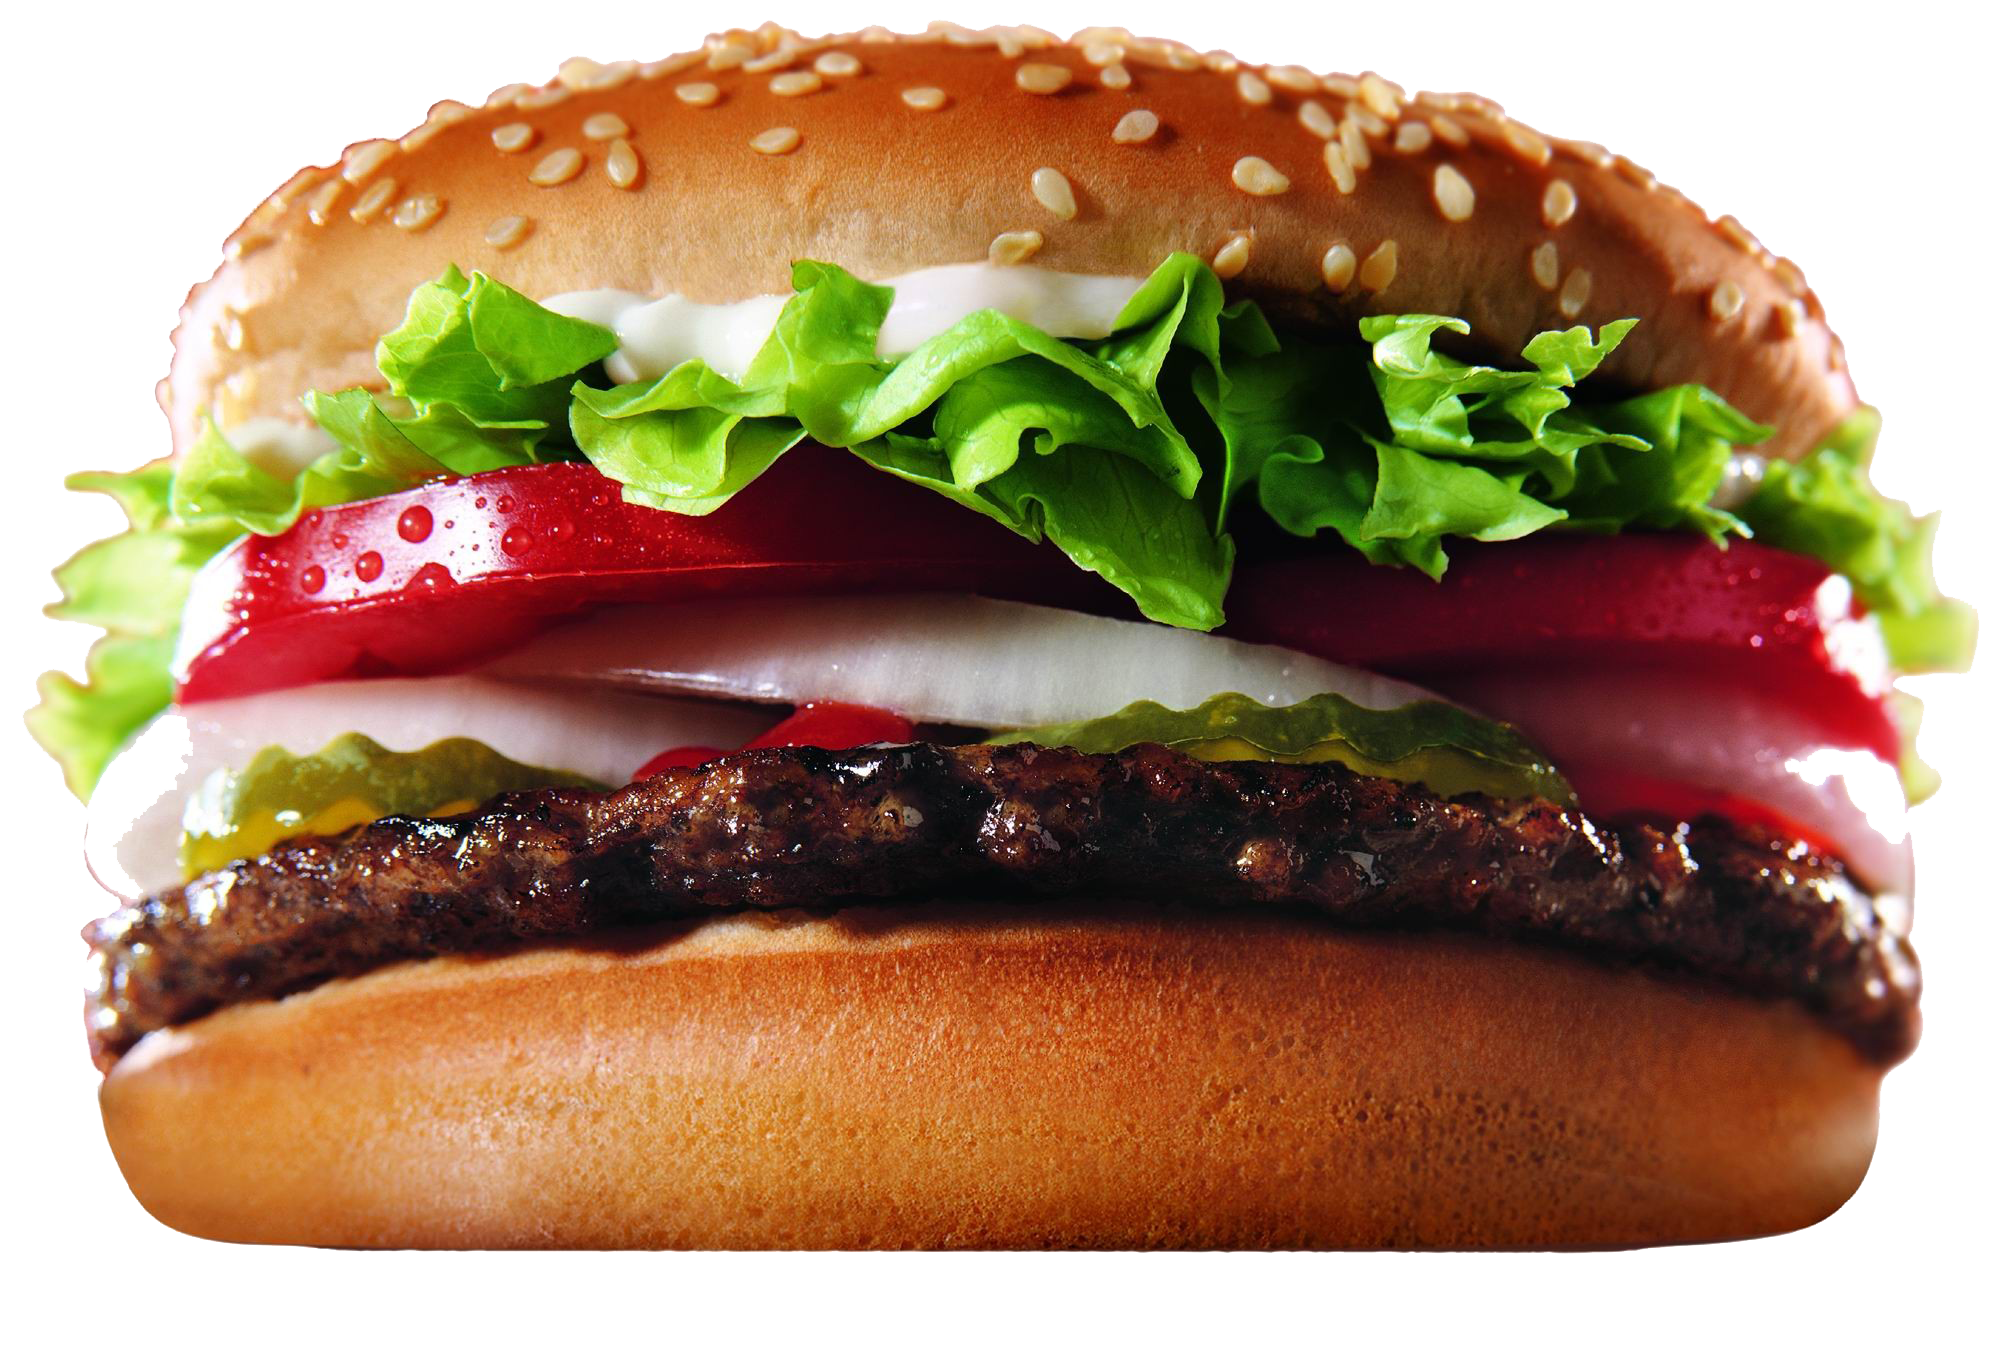 Burger Png Picture PNG Image - Burger PNG